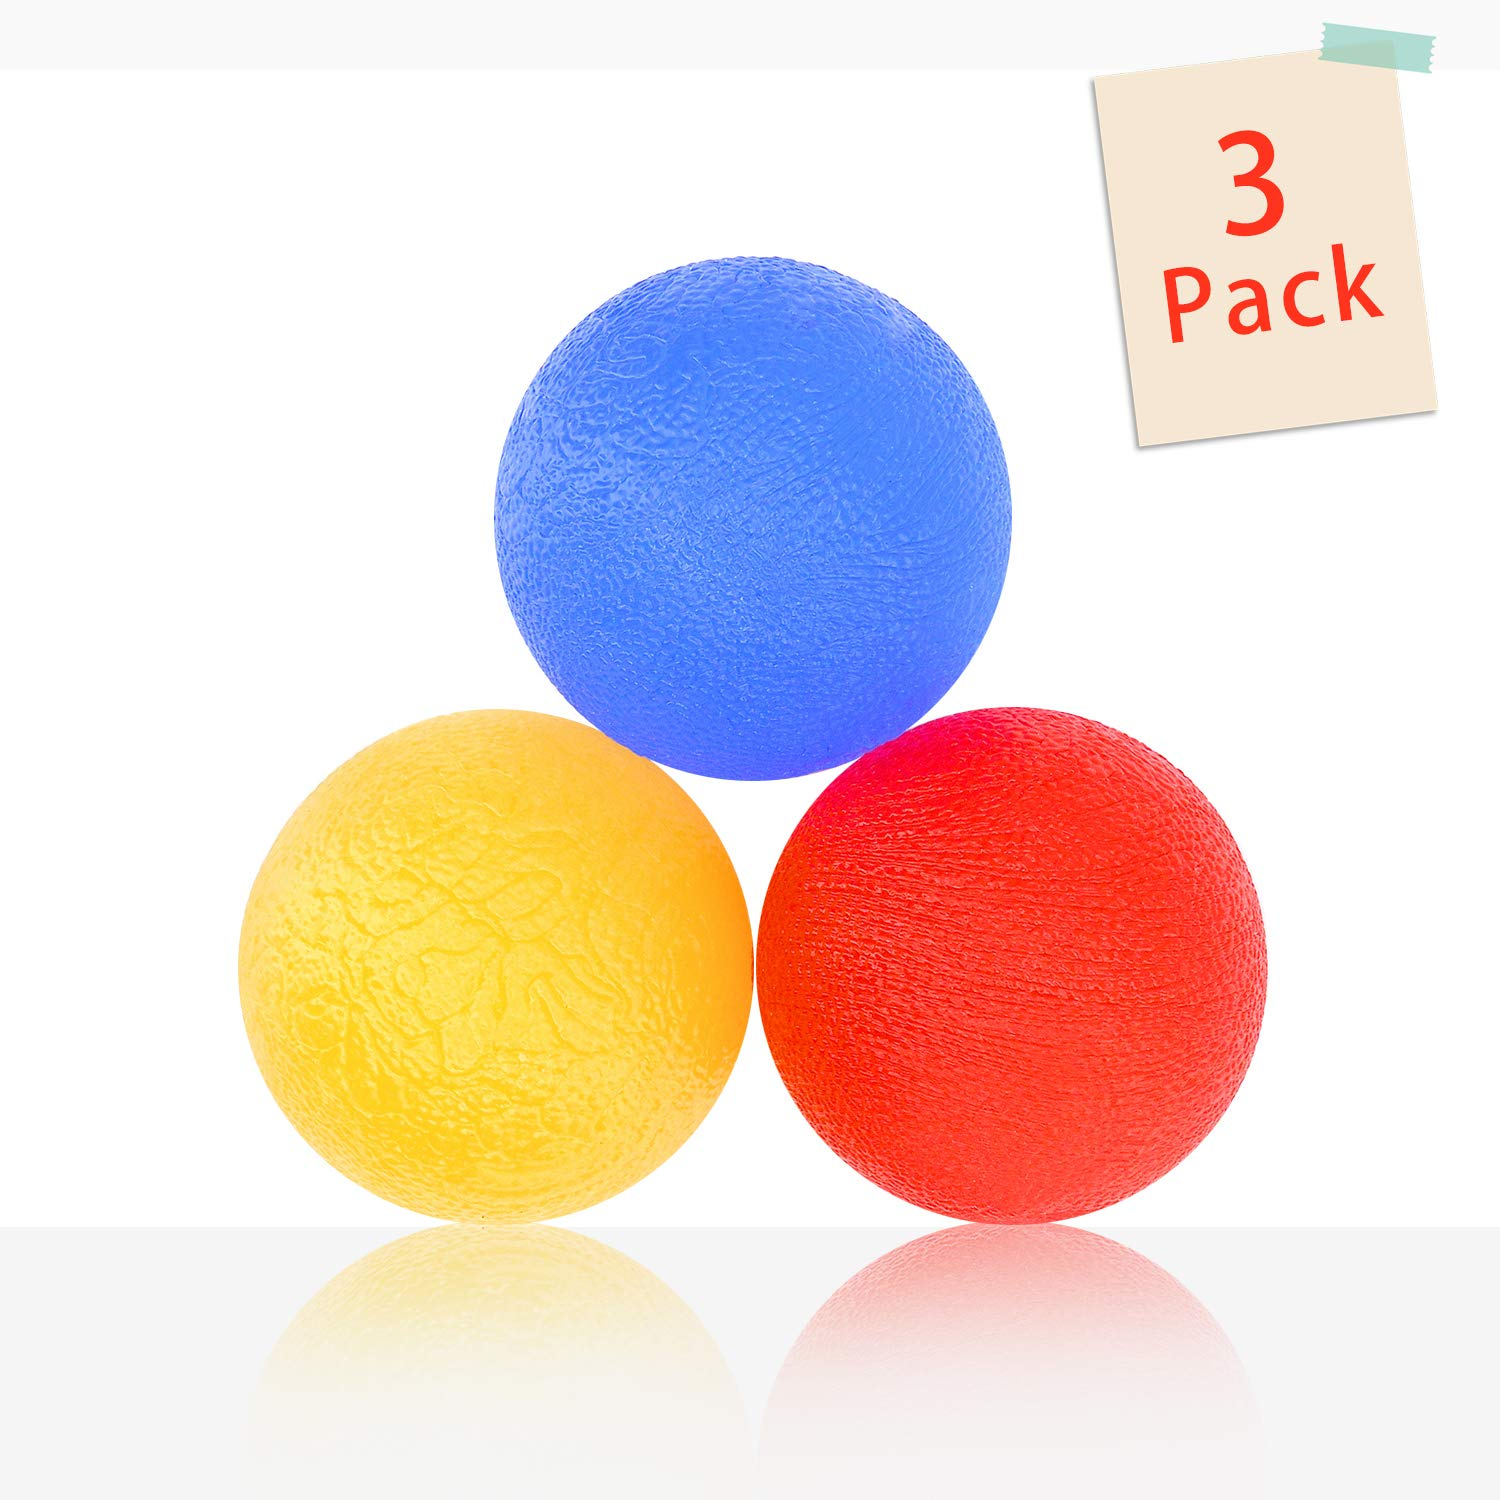 3 Pack Stress Relief Ball for Adult Anxiety and Sensory Toys for Kids Fidget - Gel Squishy Balls for ADHD,Autism - Hand Exercise Balls with 3 Levels Squeeze Resistance for Grip Strength Trainer